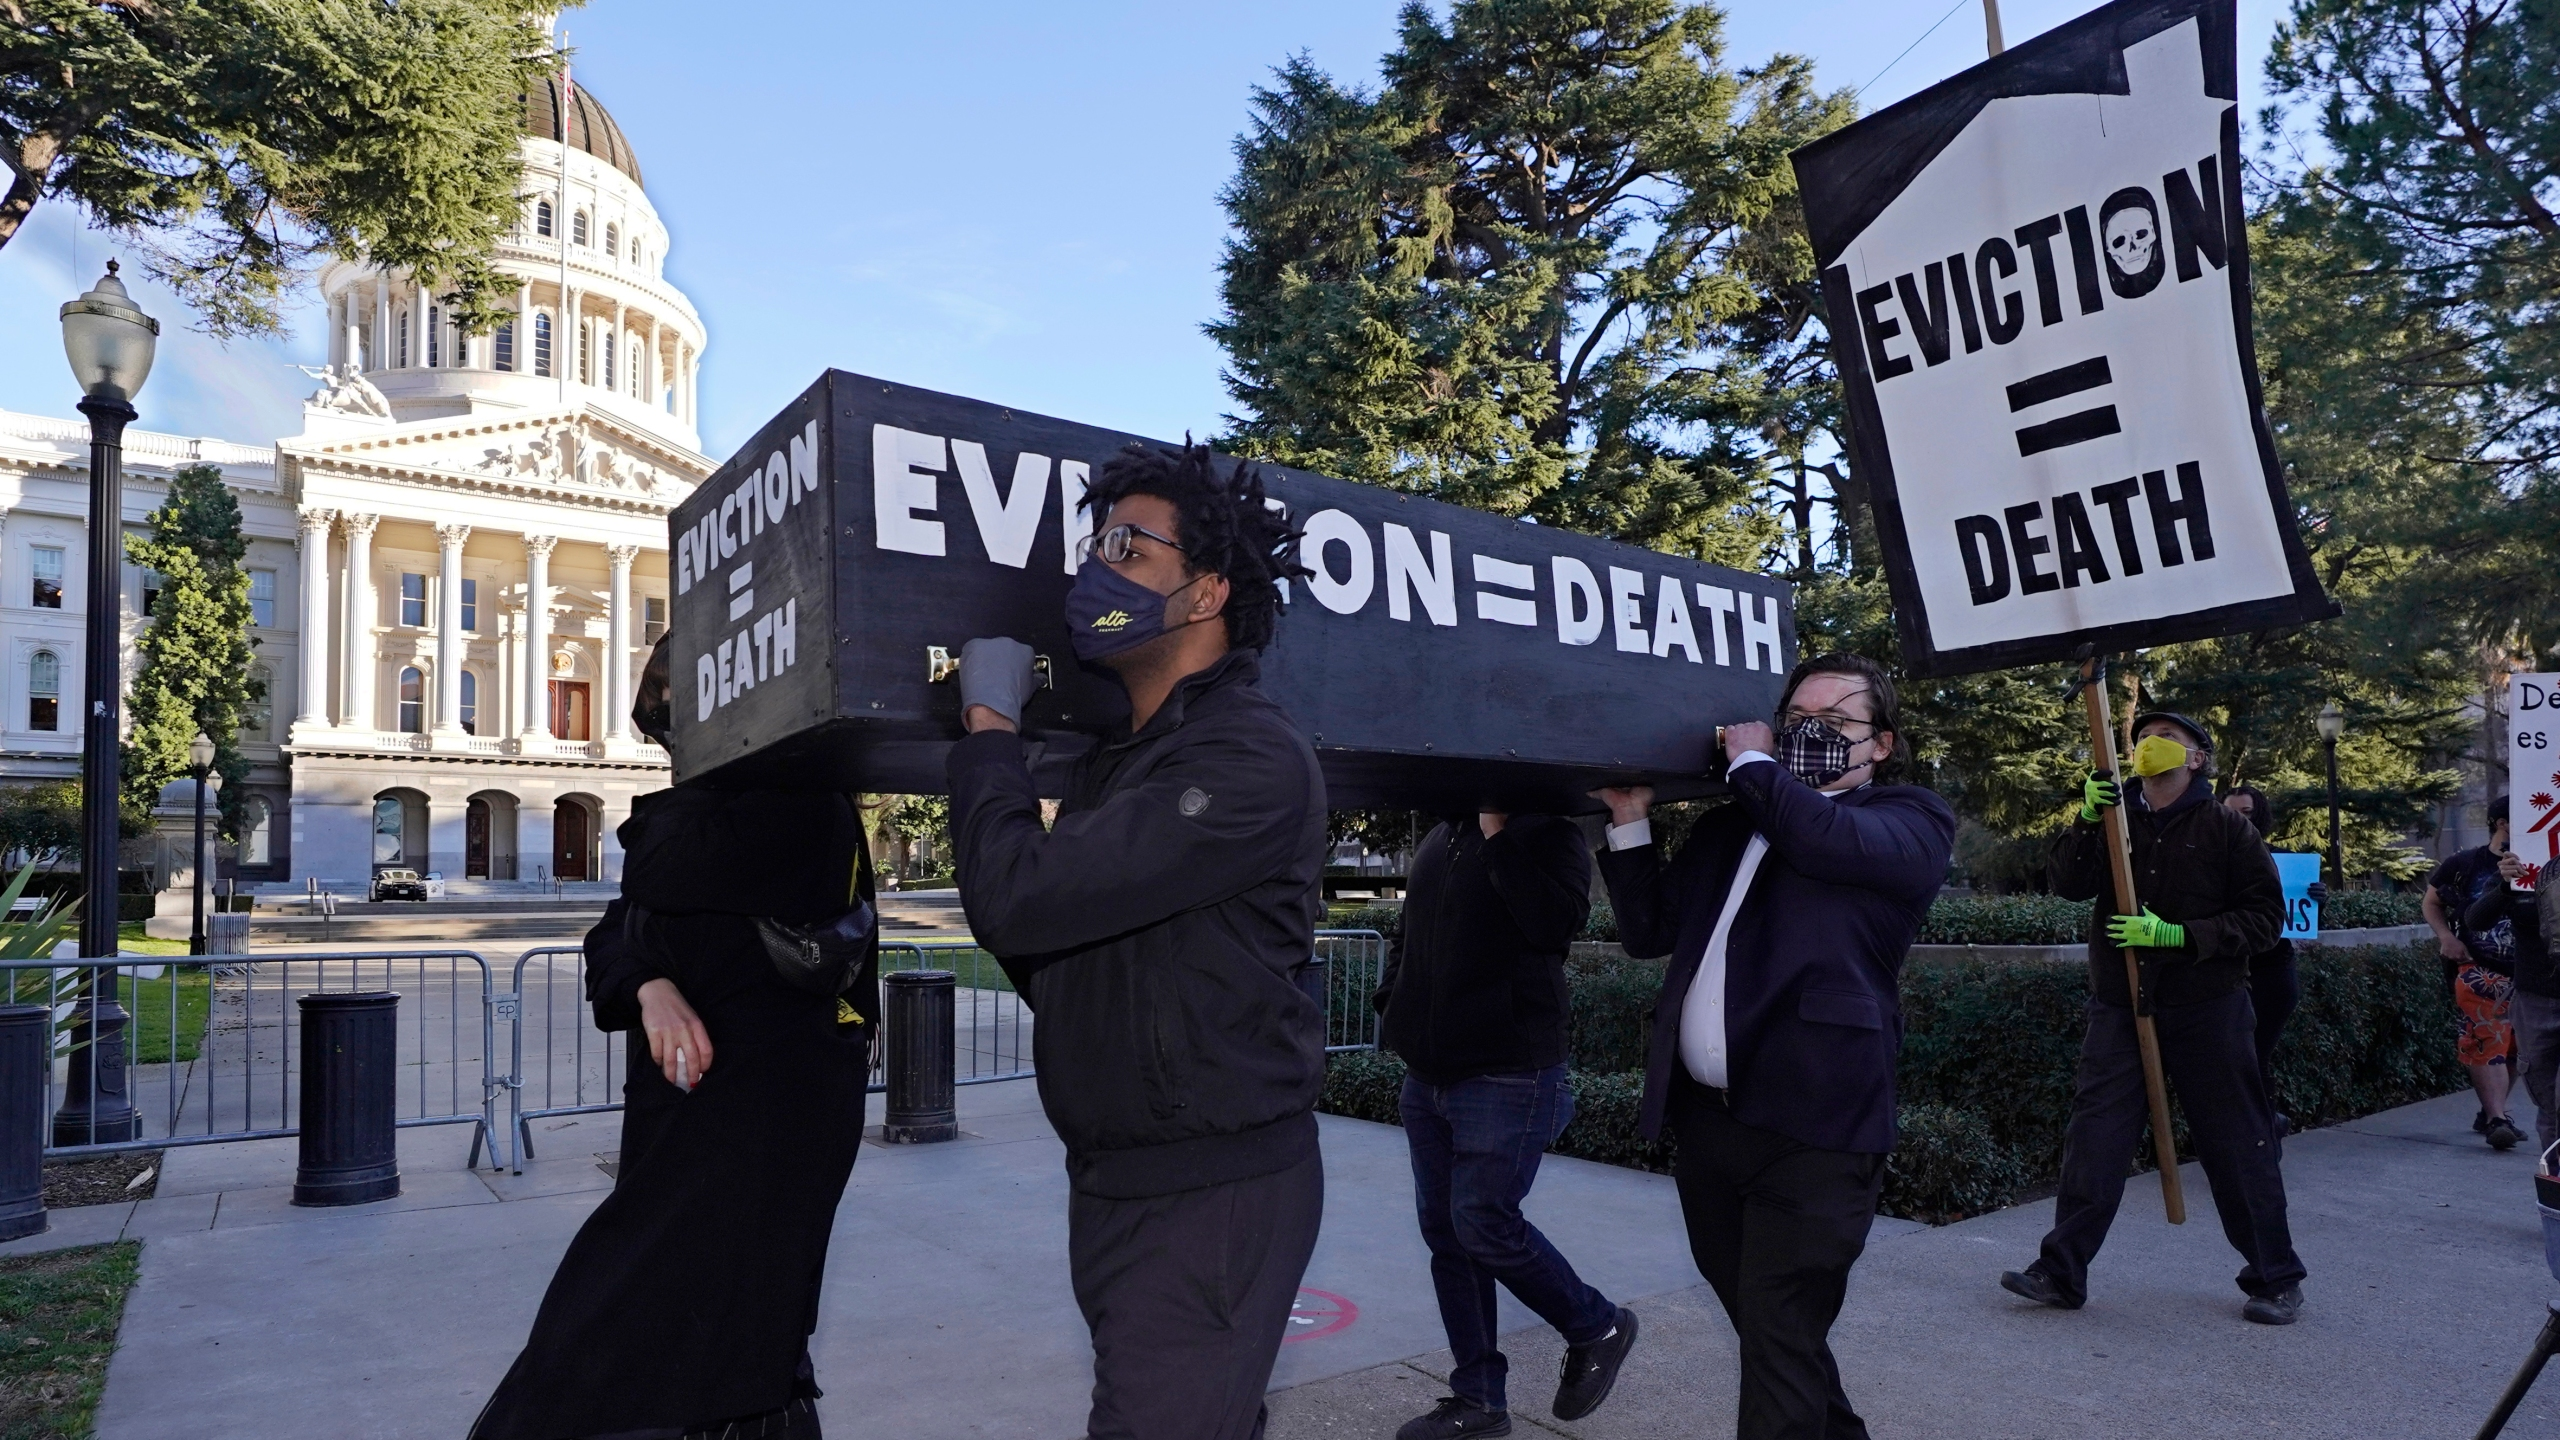 Demonstrators call for passage of rent forgiveness and stronger eviction protections legislation as they carry a mock casket past the Capitol in Sacramento on Jan. 25, 2021. (Rich Pedroncelli / Associated Press)